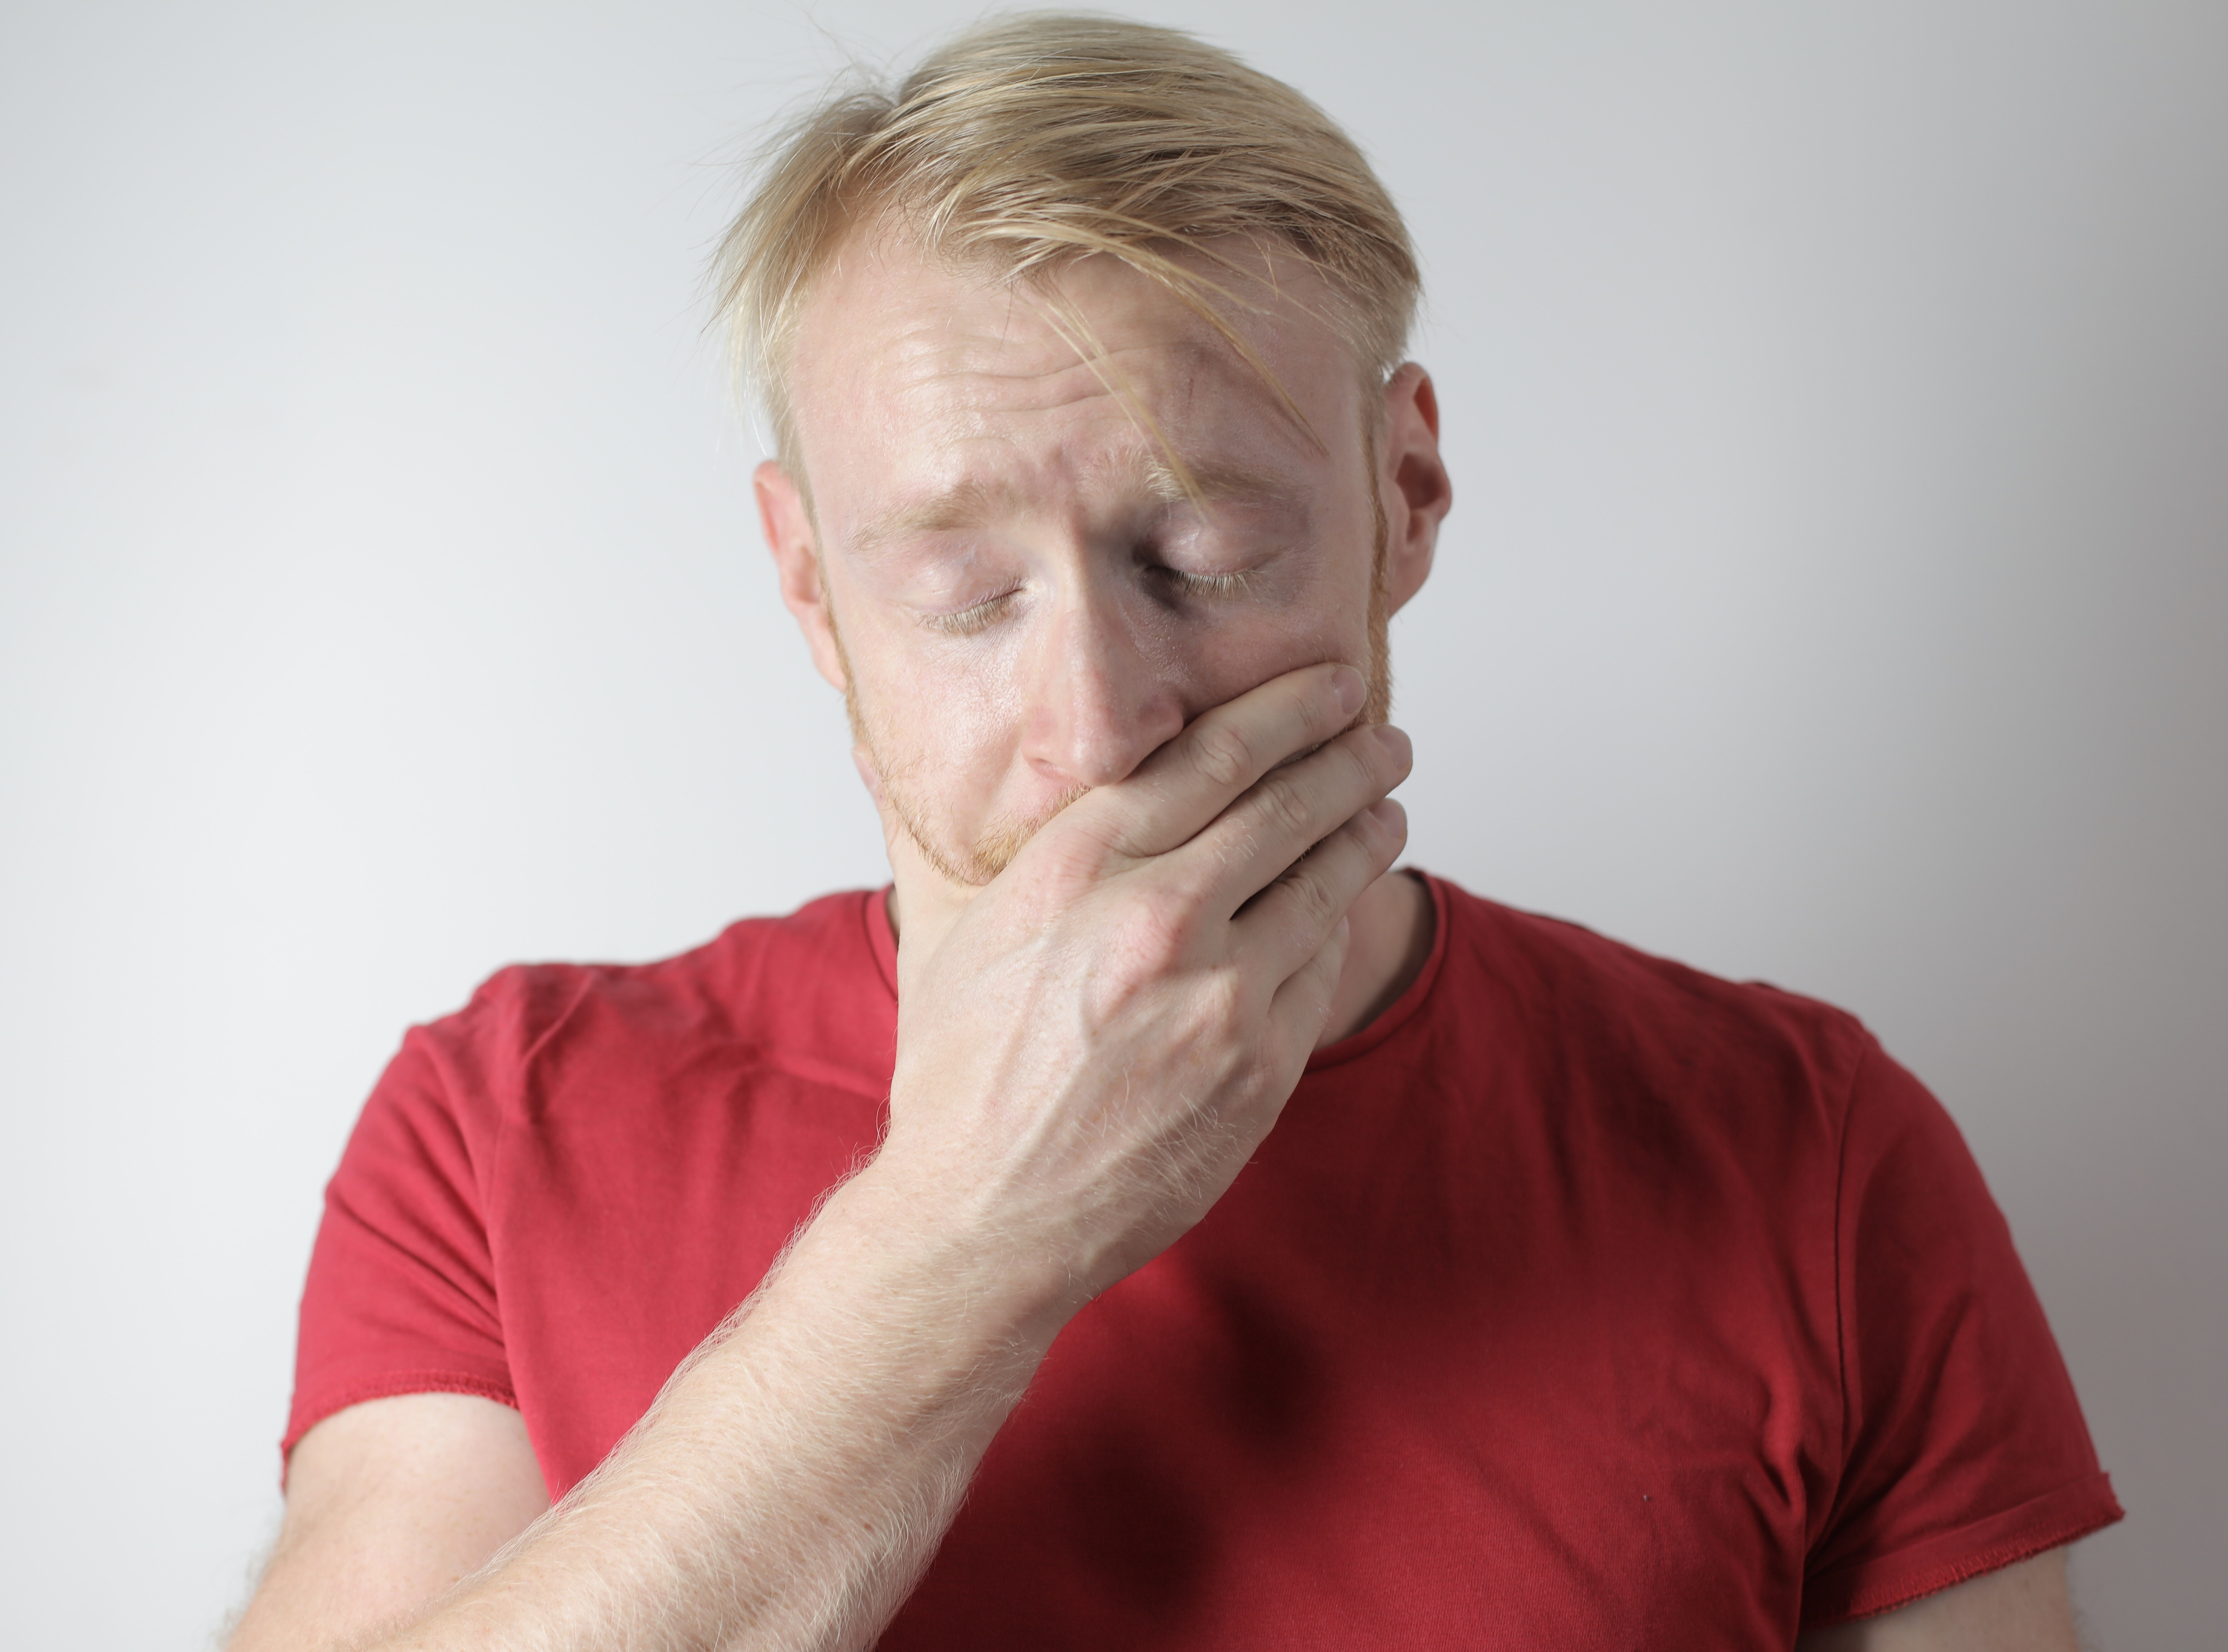 What Are the Health Risks of an Impacted Tooth?